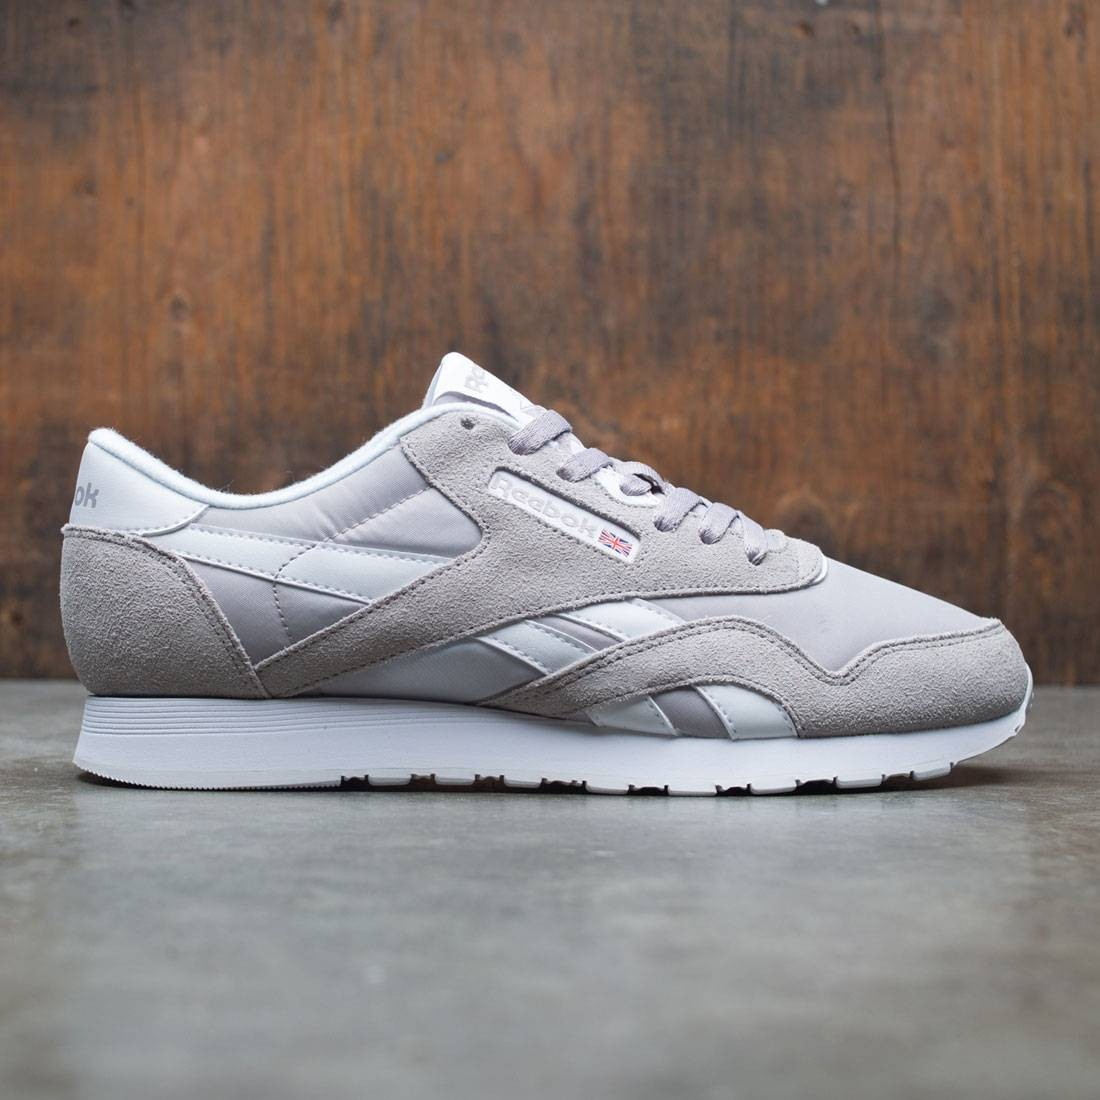 Sells köper nu Storbritannien butik Reebok Men Classic Nylon gray whispher grey white